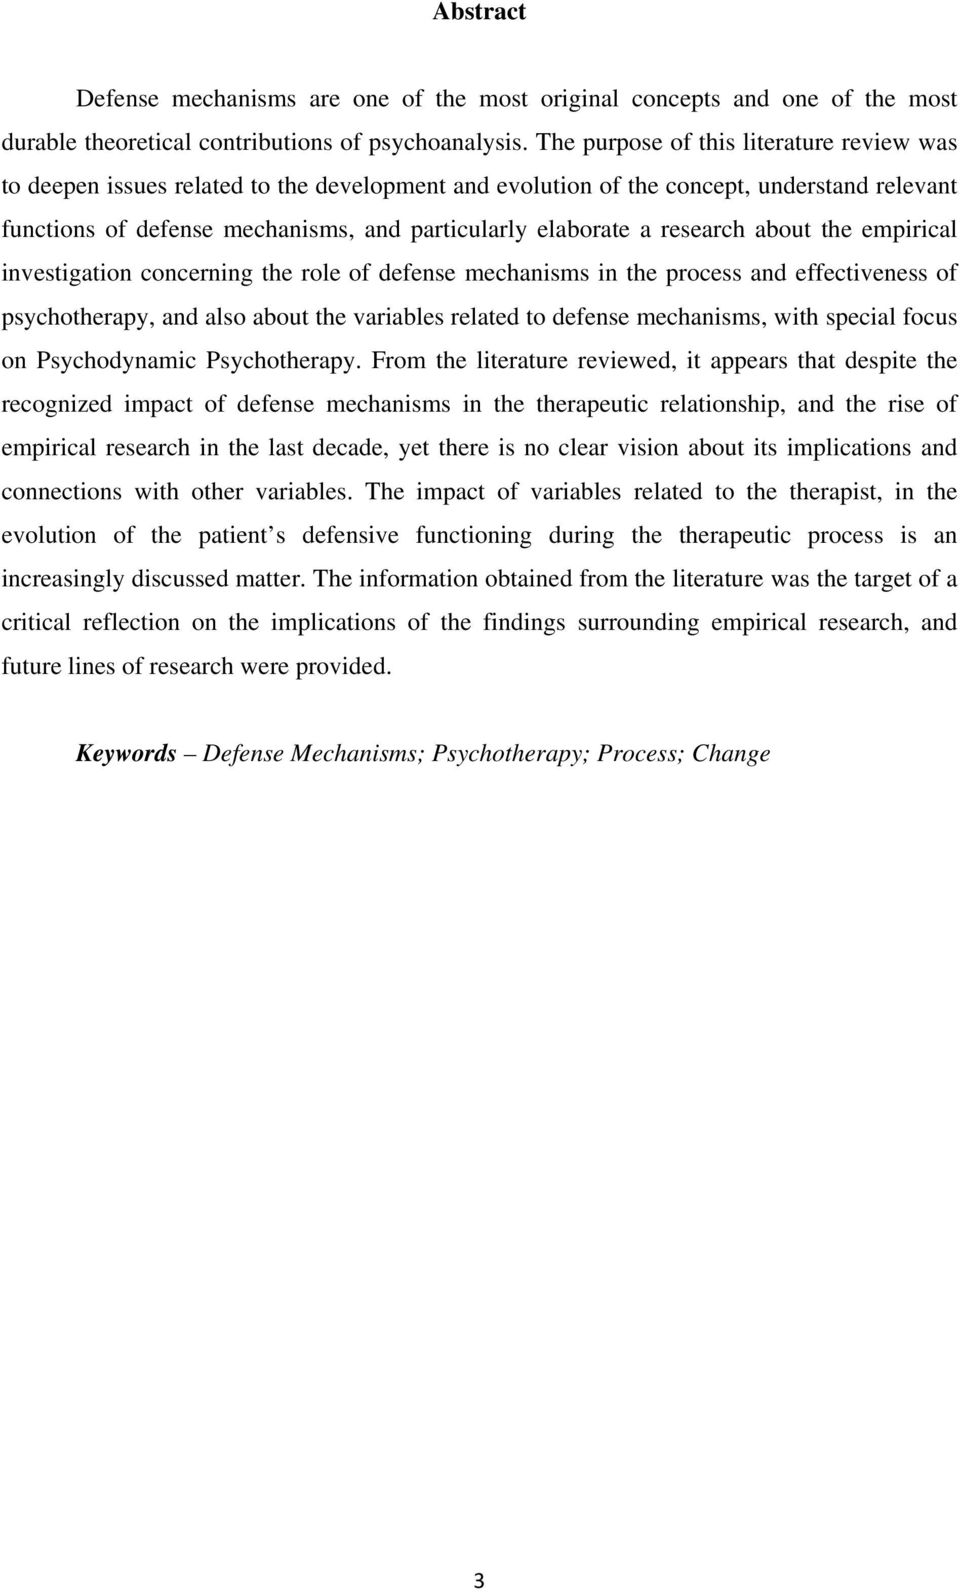 research about the empirical investigation concerning the role of defense mechanisms in the process and effectiveness of psychotherapy, and also about the variables related to defense mechanisms,